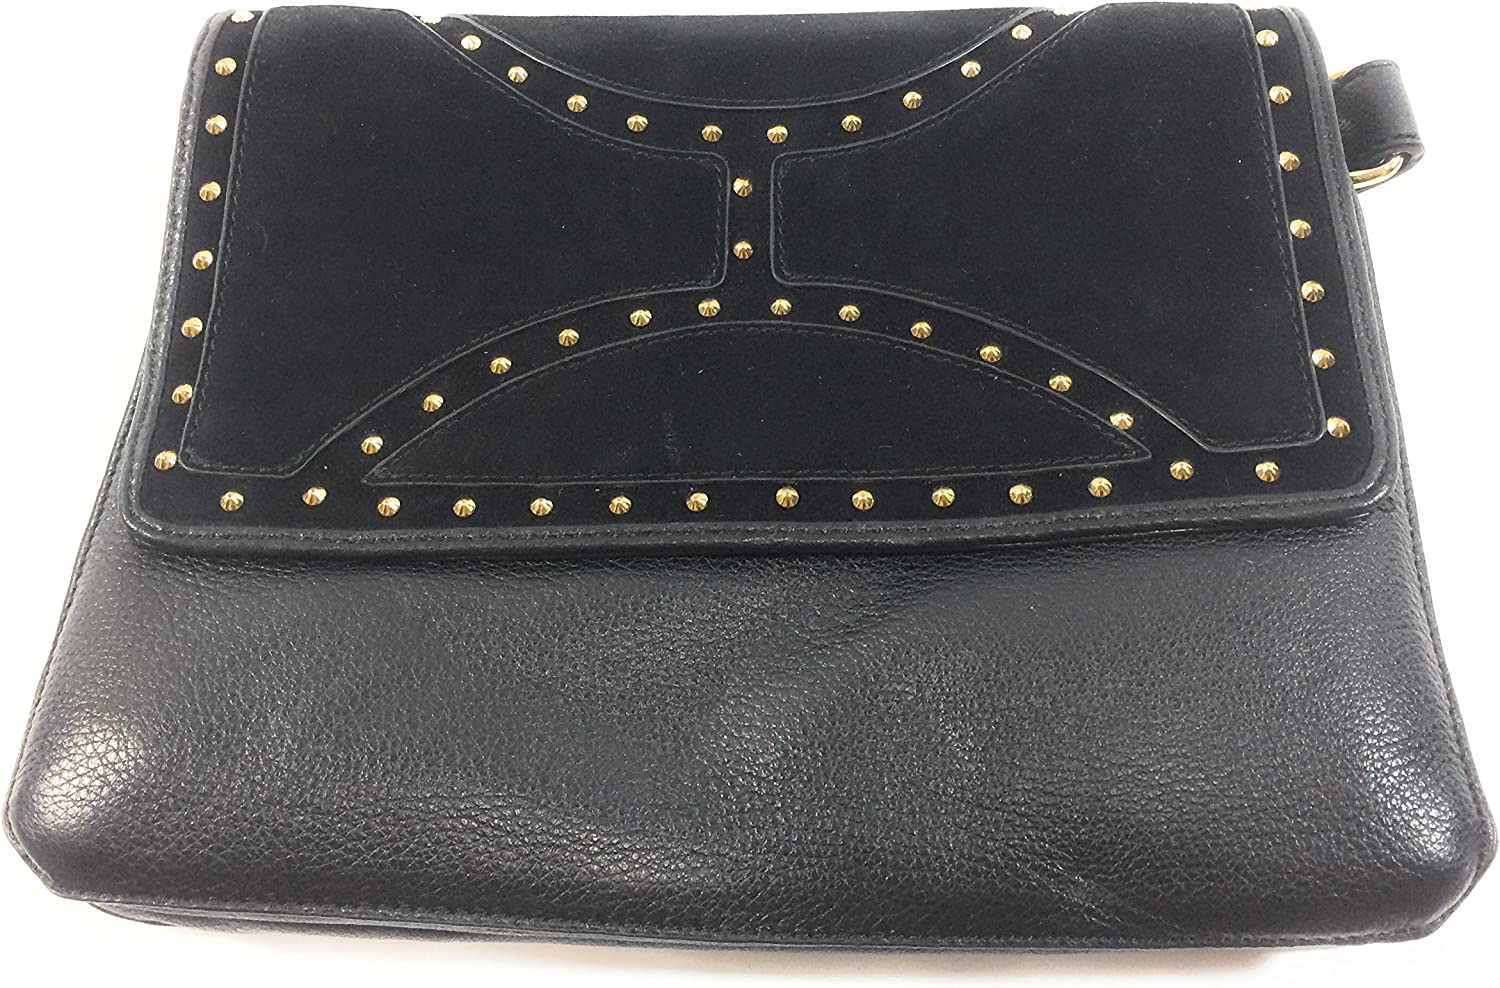 Sam Edelman Black Leather Handbag